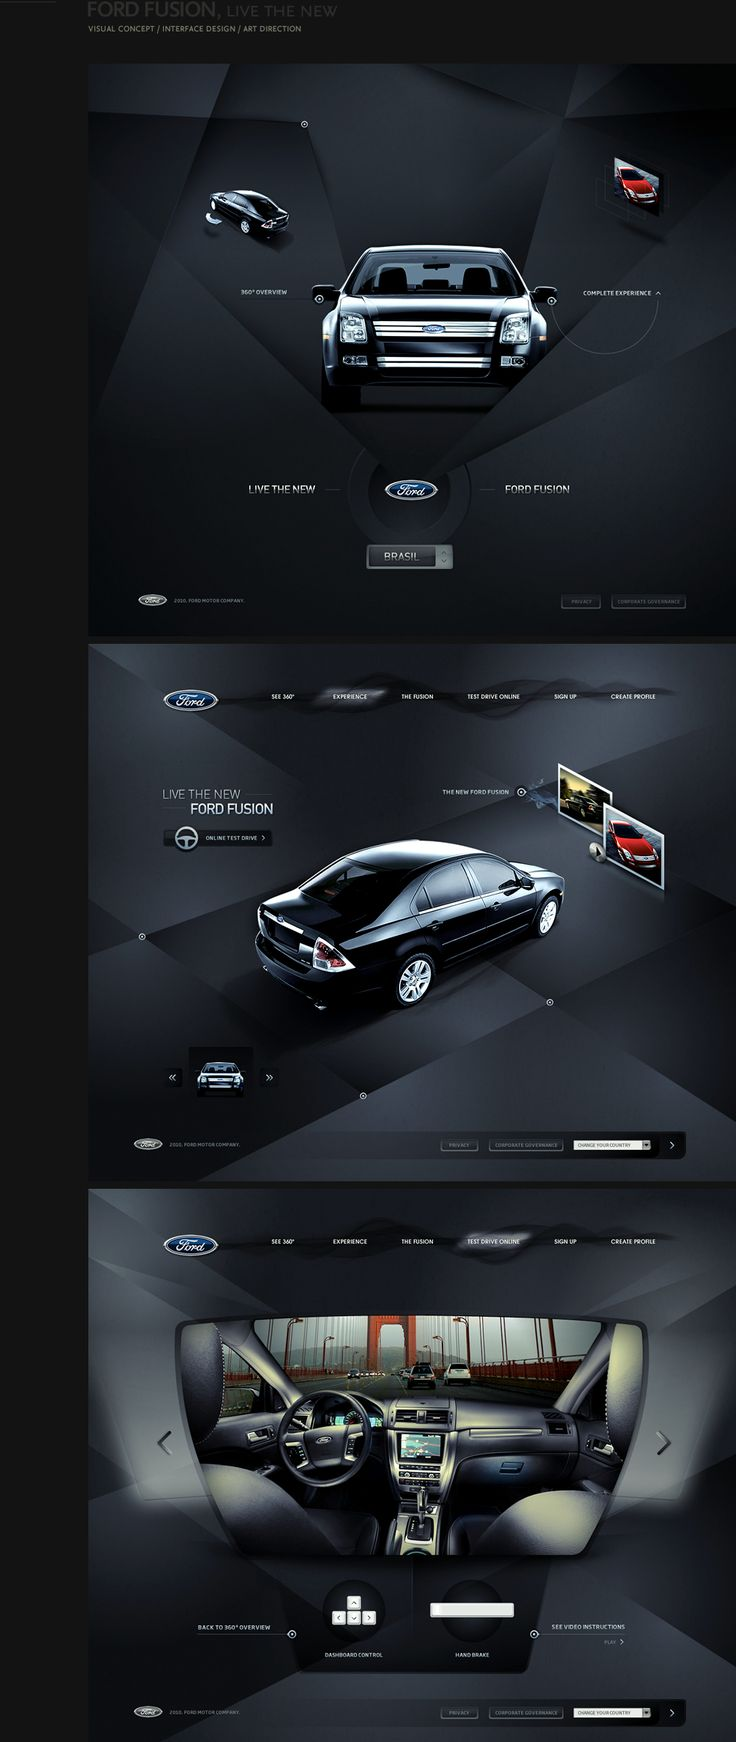 Ford Fusion website